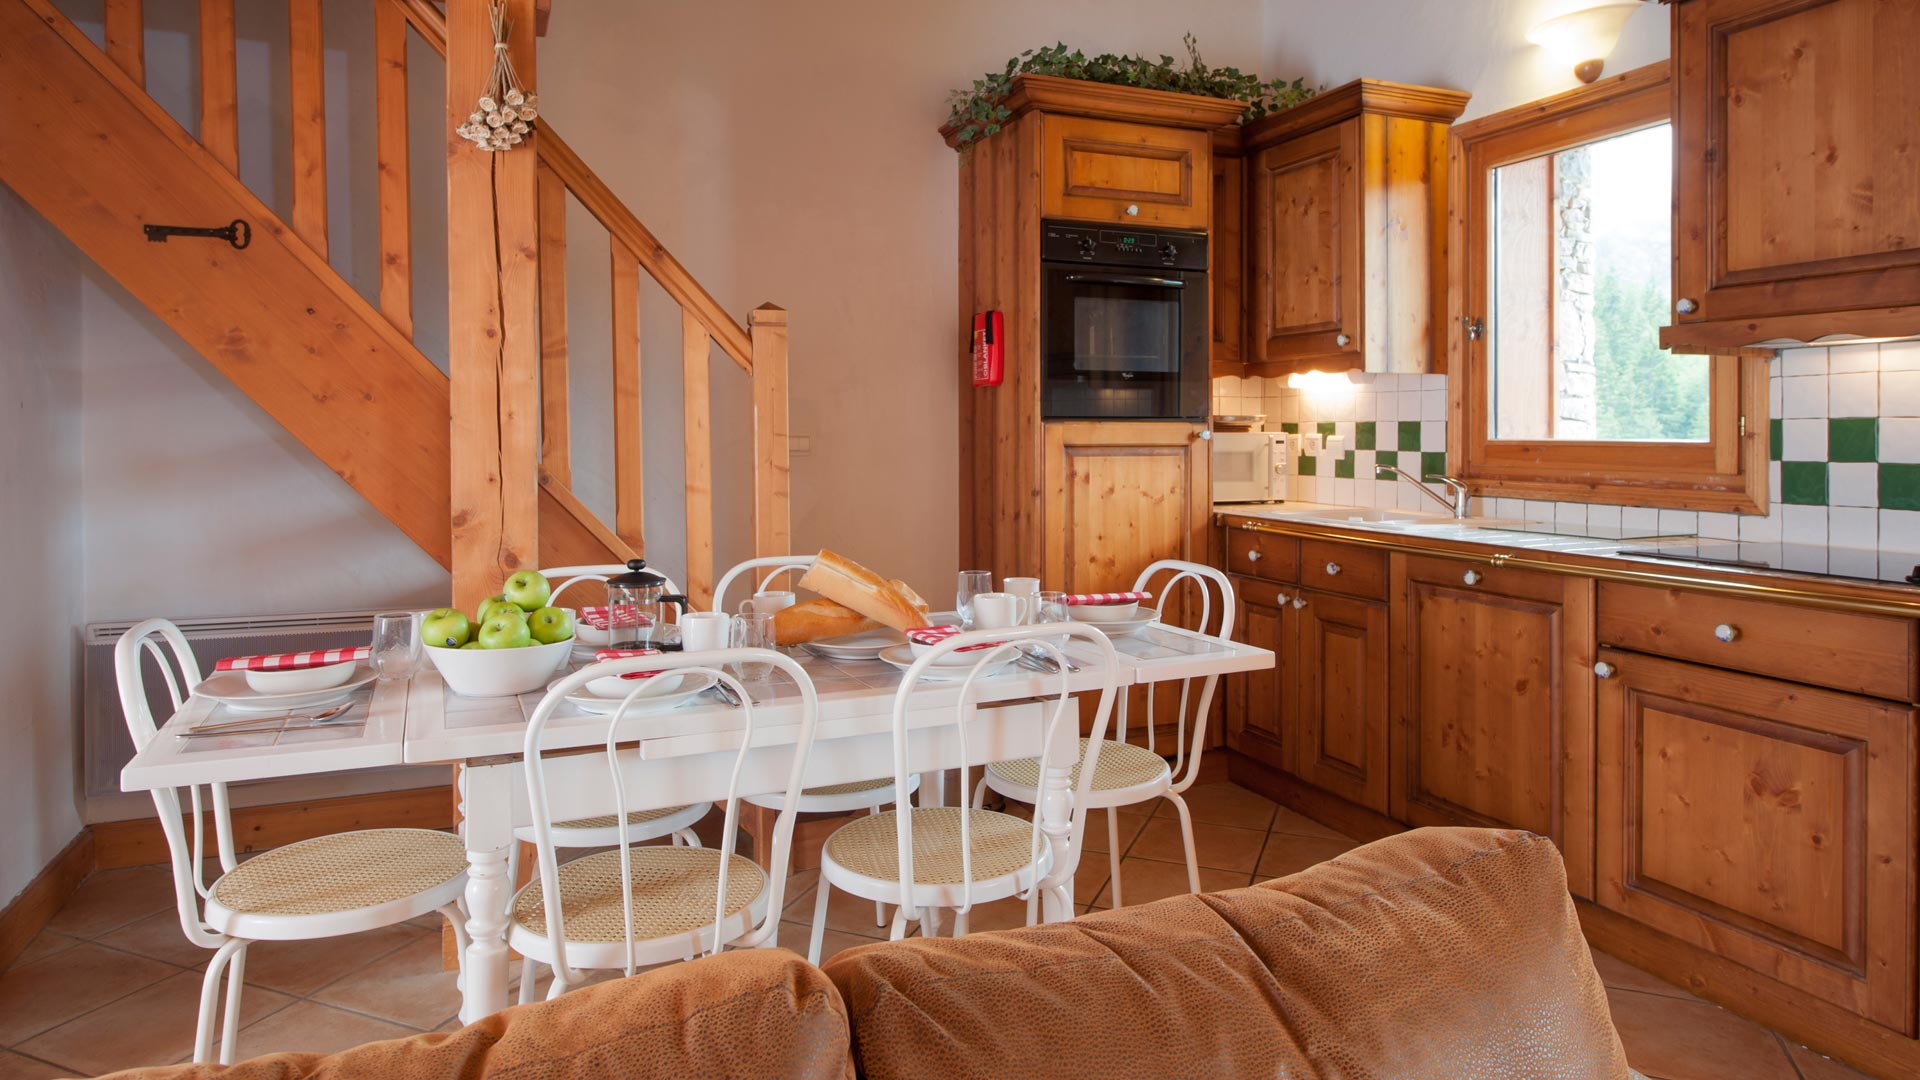 Kitchen & Dining Area in Genepi Apartment in Sainte Foy